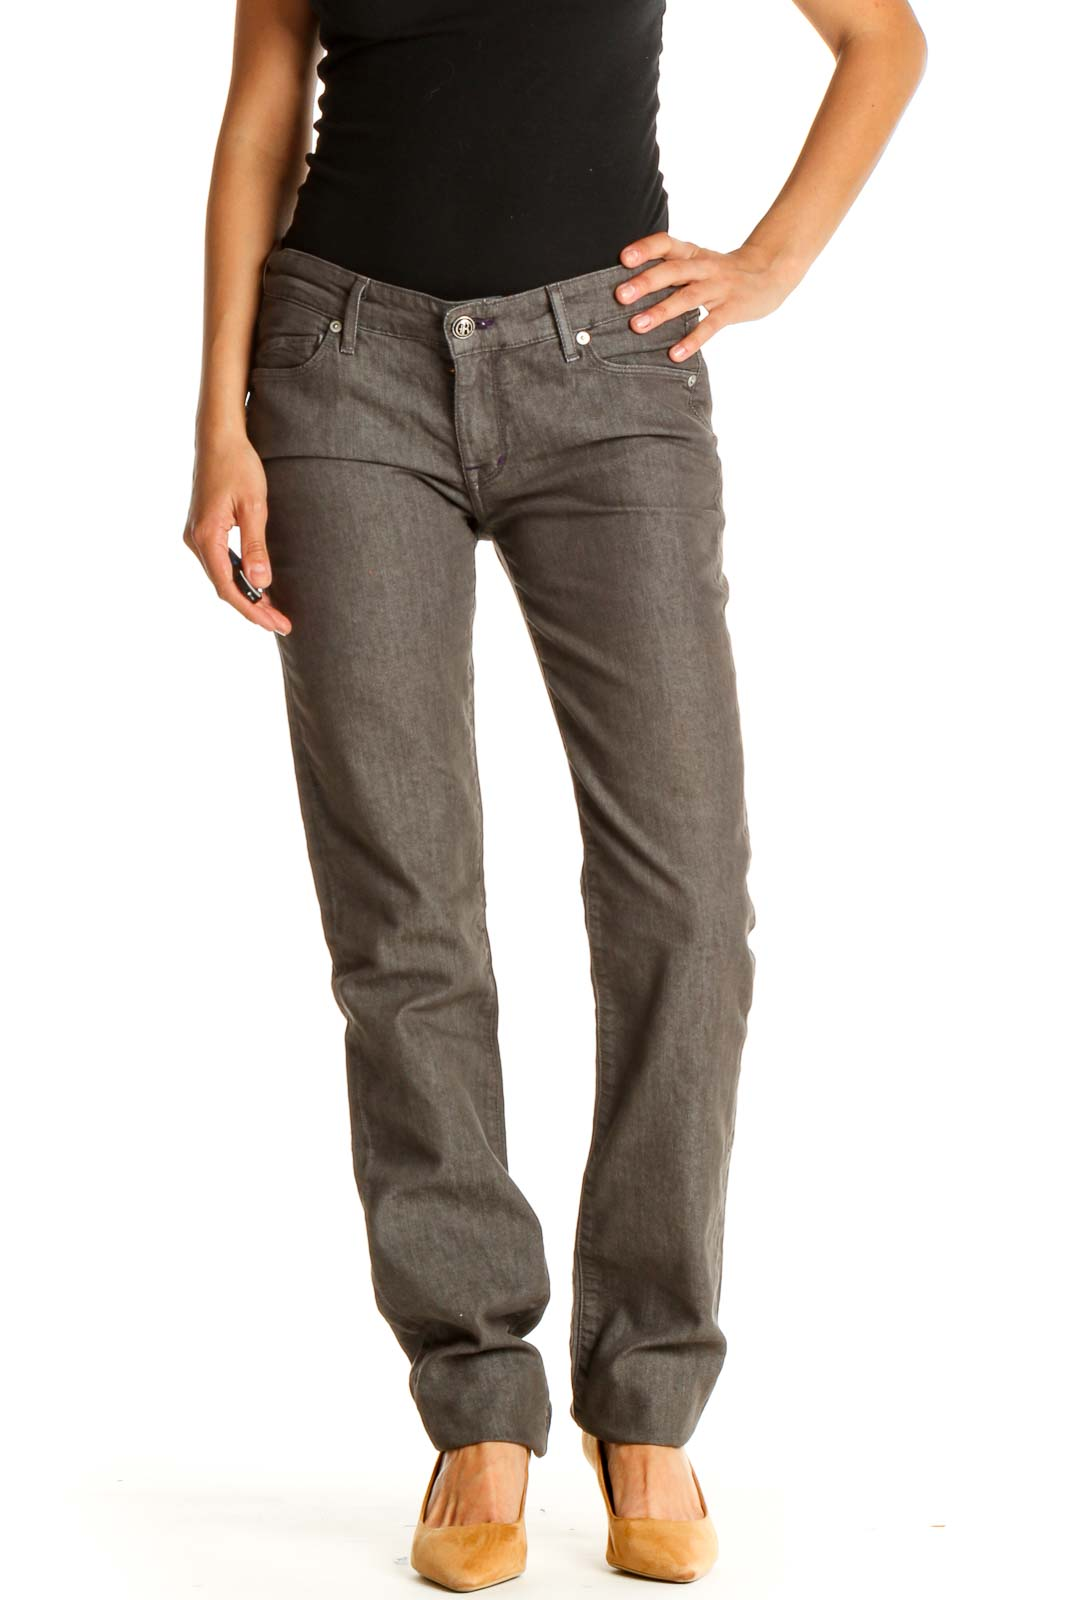 Brown Textured All Day Wear Pants Front